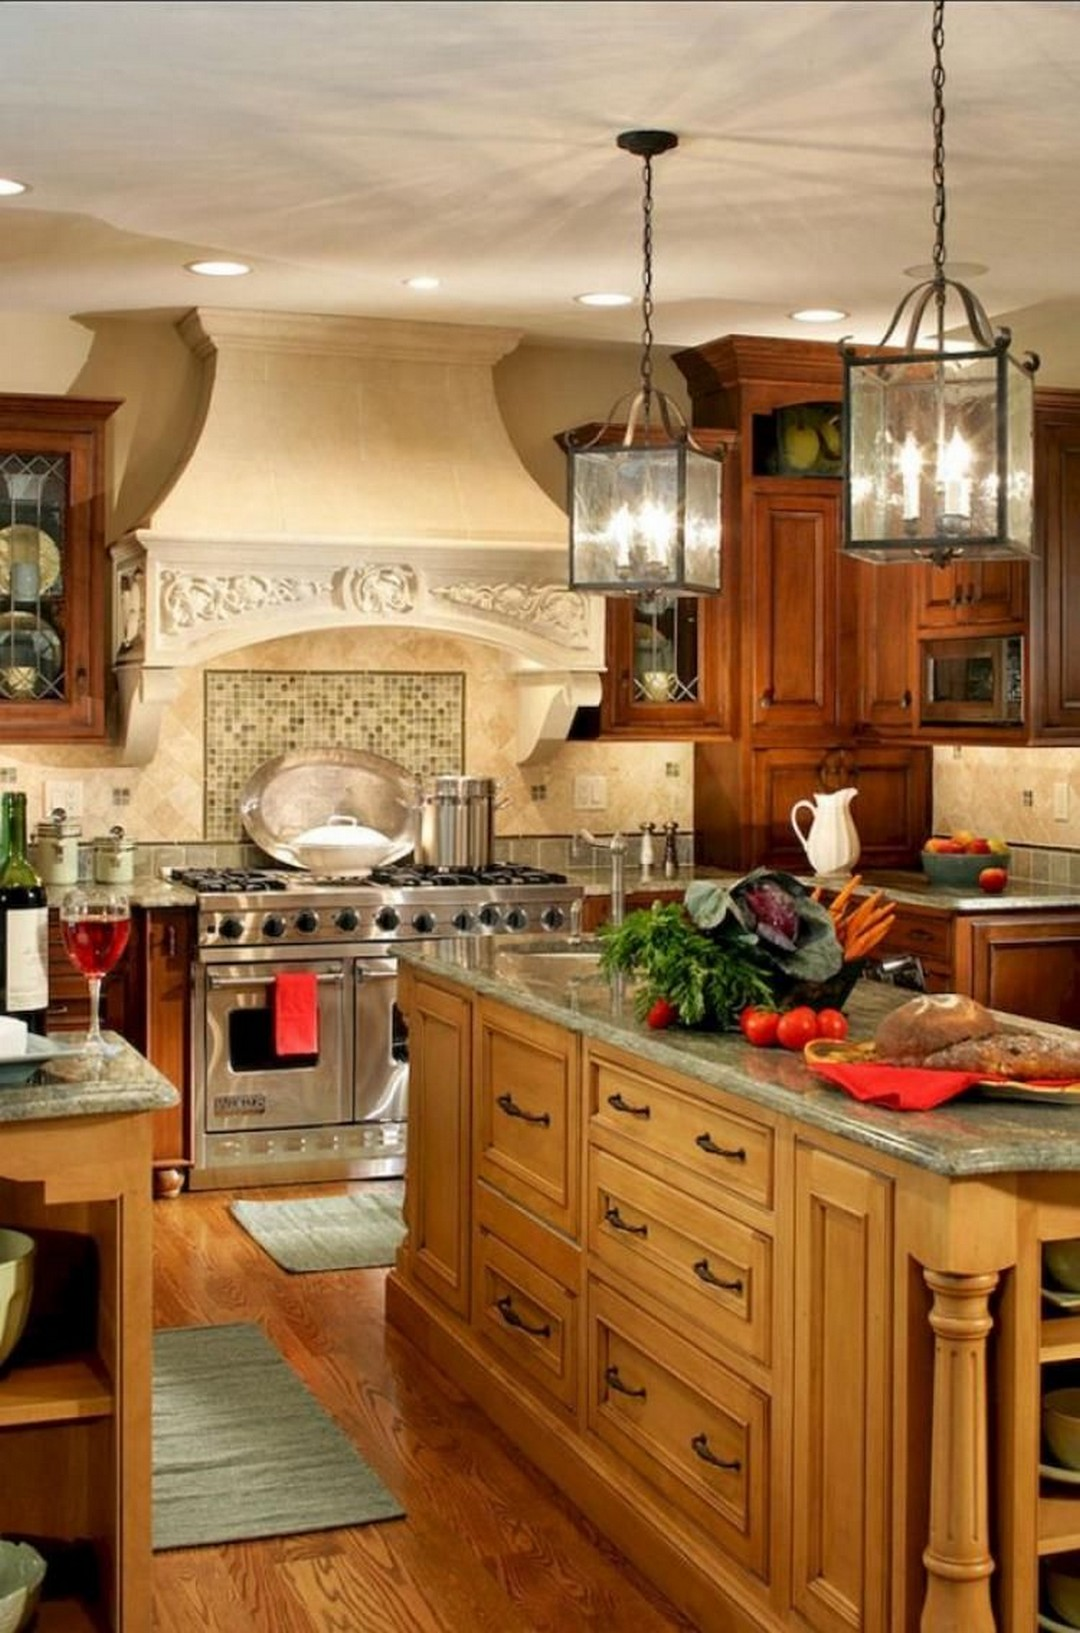 10 Kitchen And Home Decor Items Every 20 Something Needs: 10+ COUNTRY KITCHEN DESIGN MEANING TO REMODEL YOUR KITCHEN